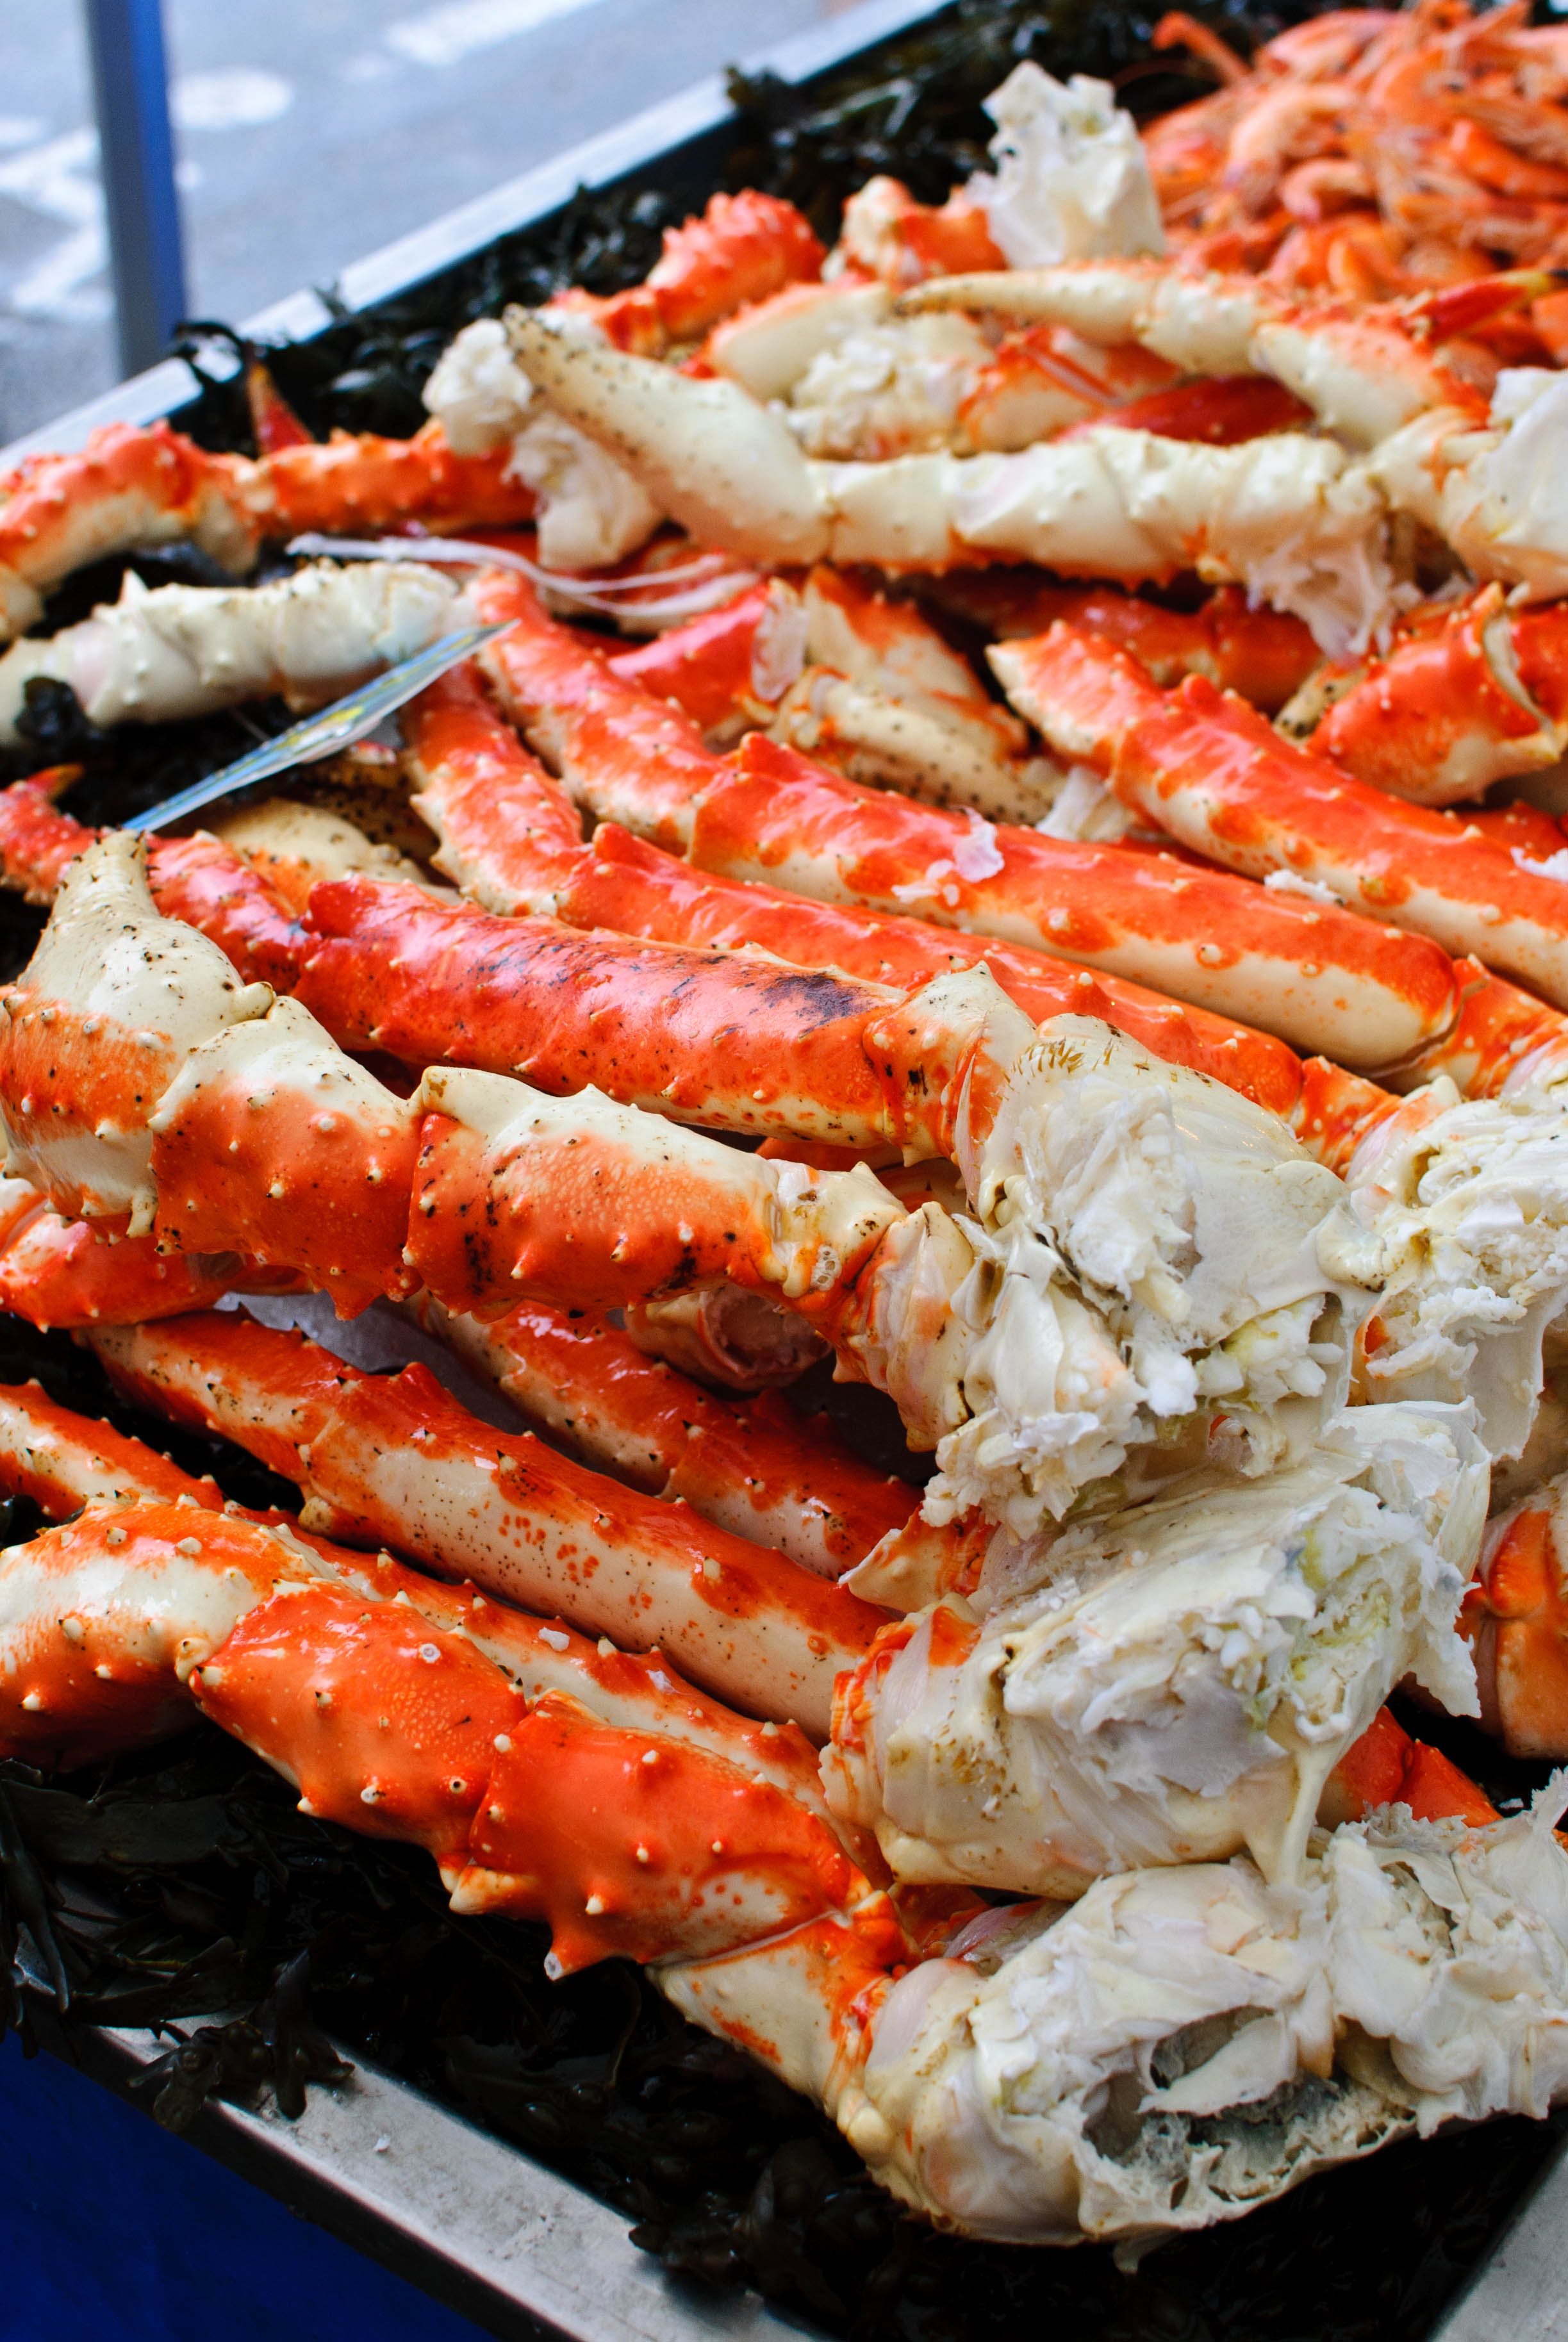 Declawing of crabs - Wikipedia